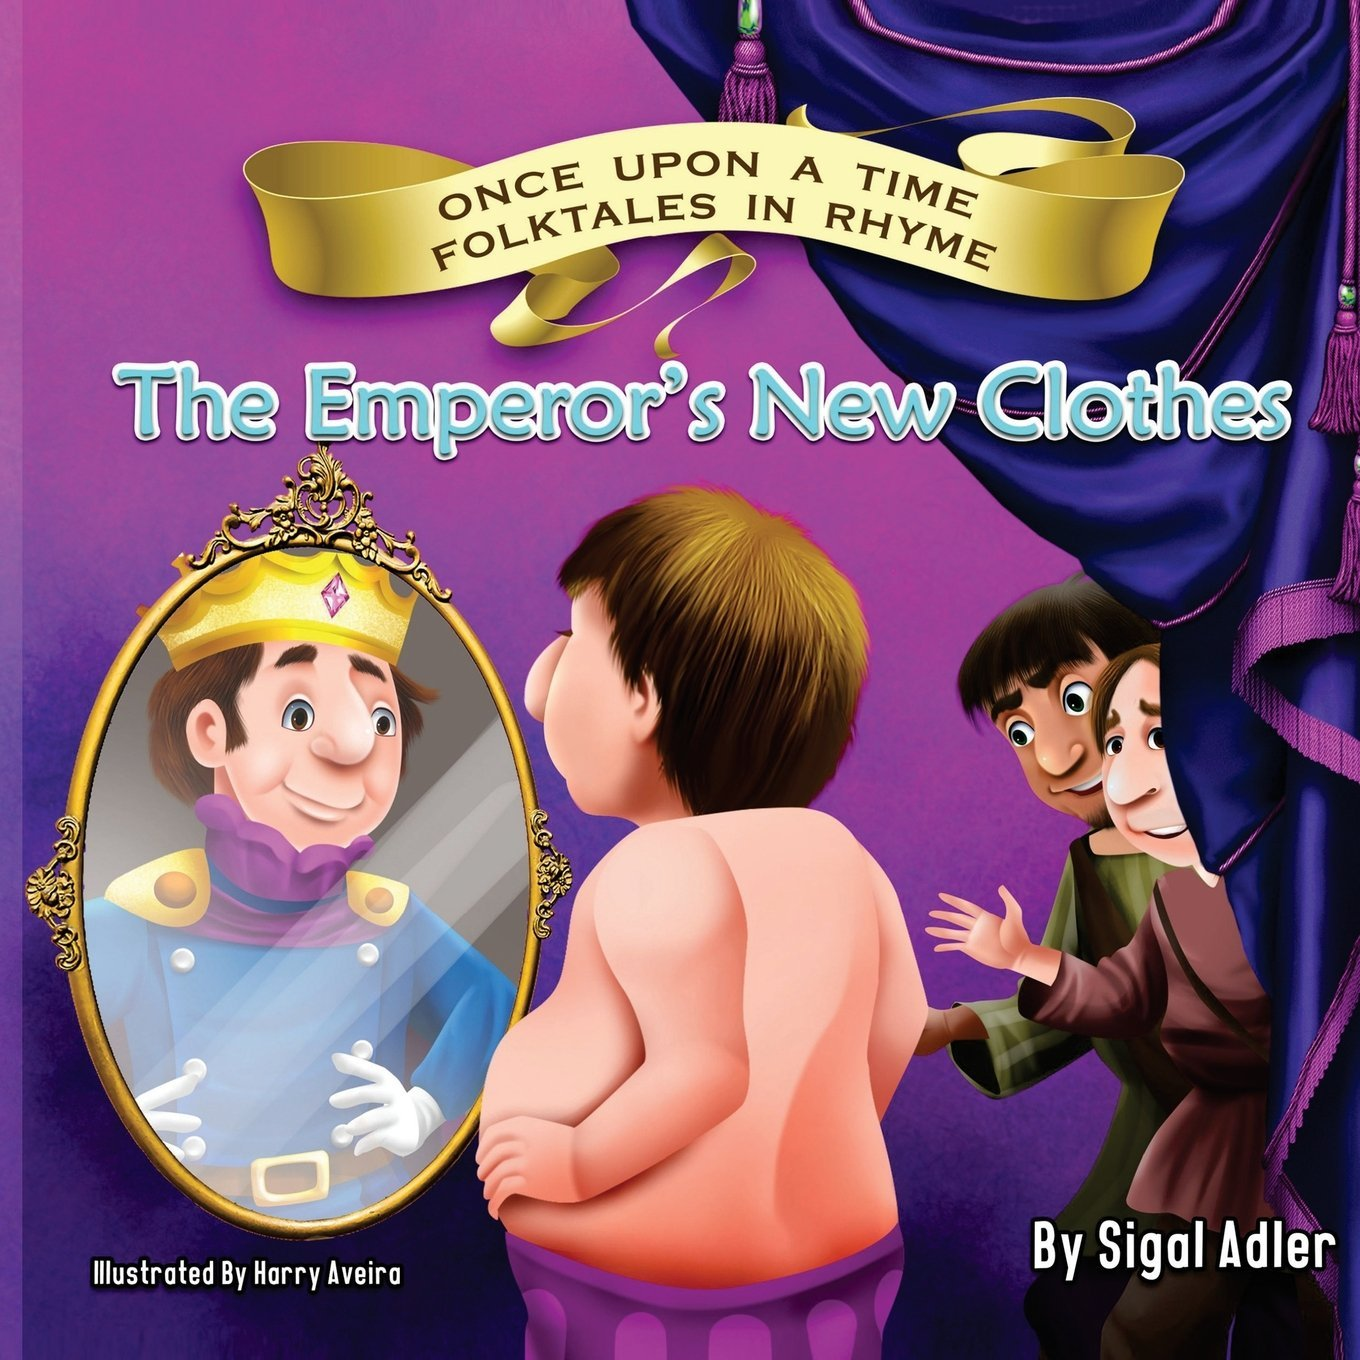 The Emperor's New Clothes: Hans Christian Andersen Stories in Verse for Kids (Children's Bedtime Dreaming books Book) (Volume 2) pdf epub